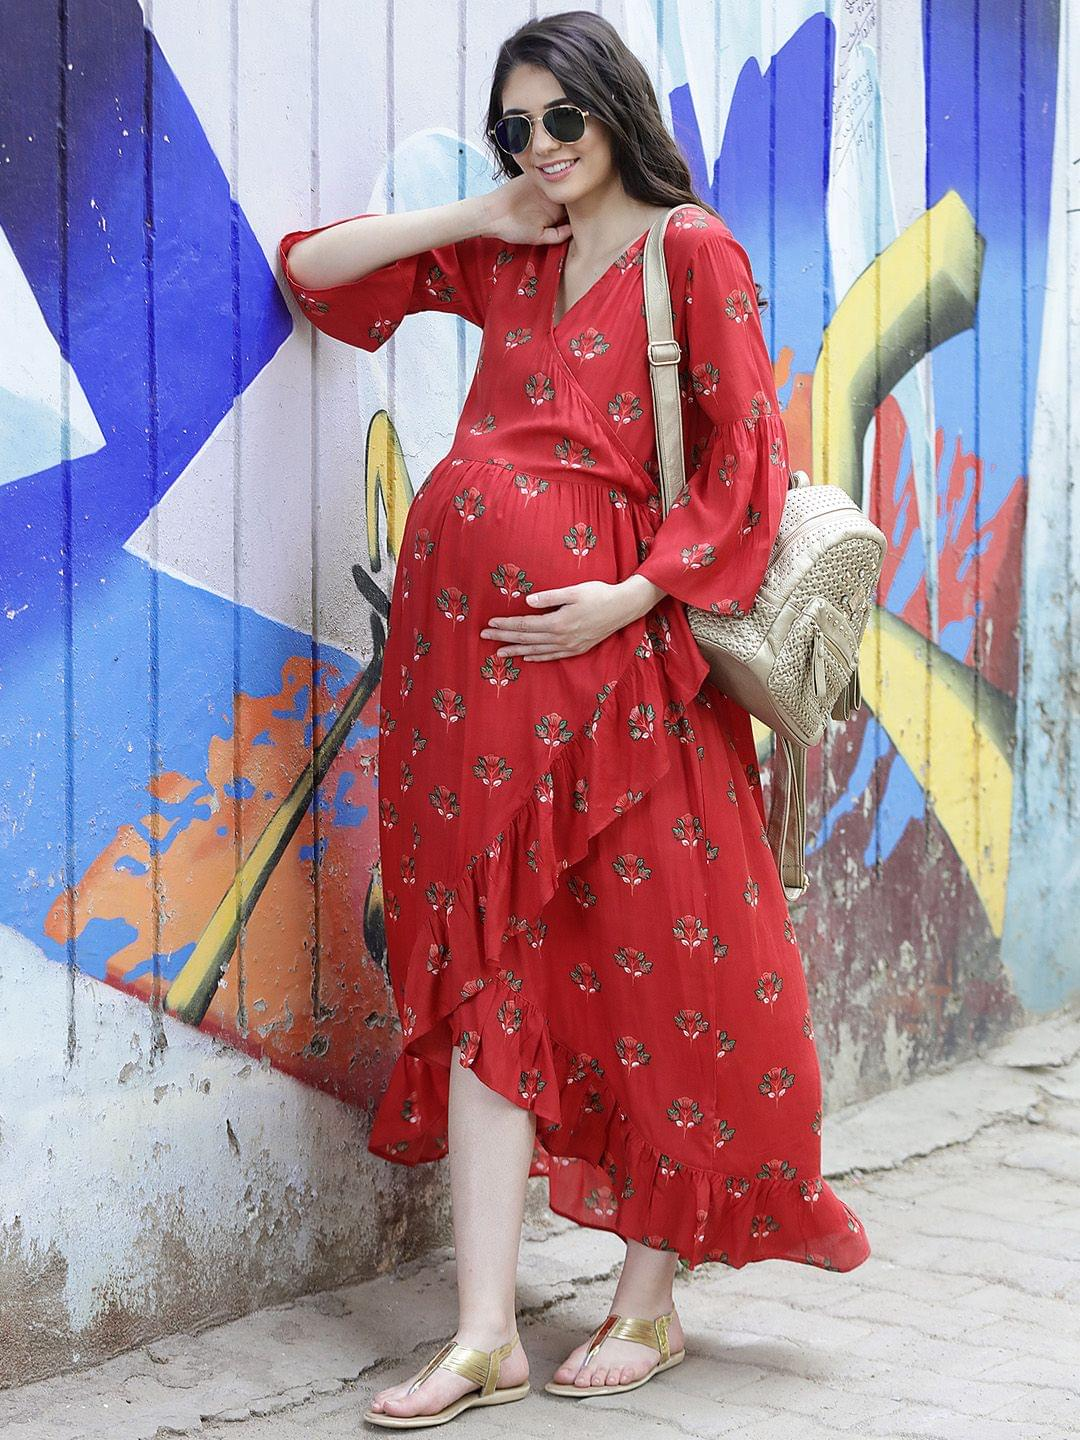 Firebrick Red Wrap Maternity Dress w/ Floral Pattern, Made of Rayon- Mine4Nine